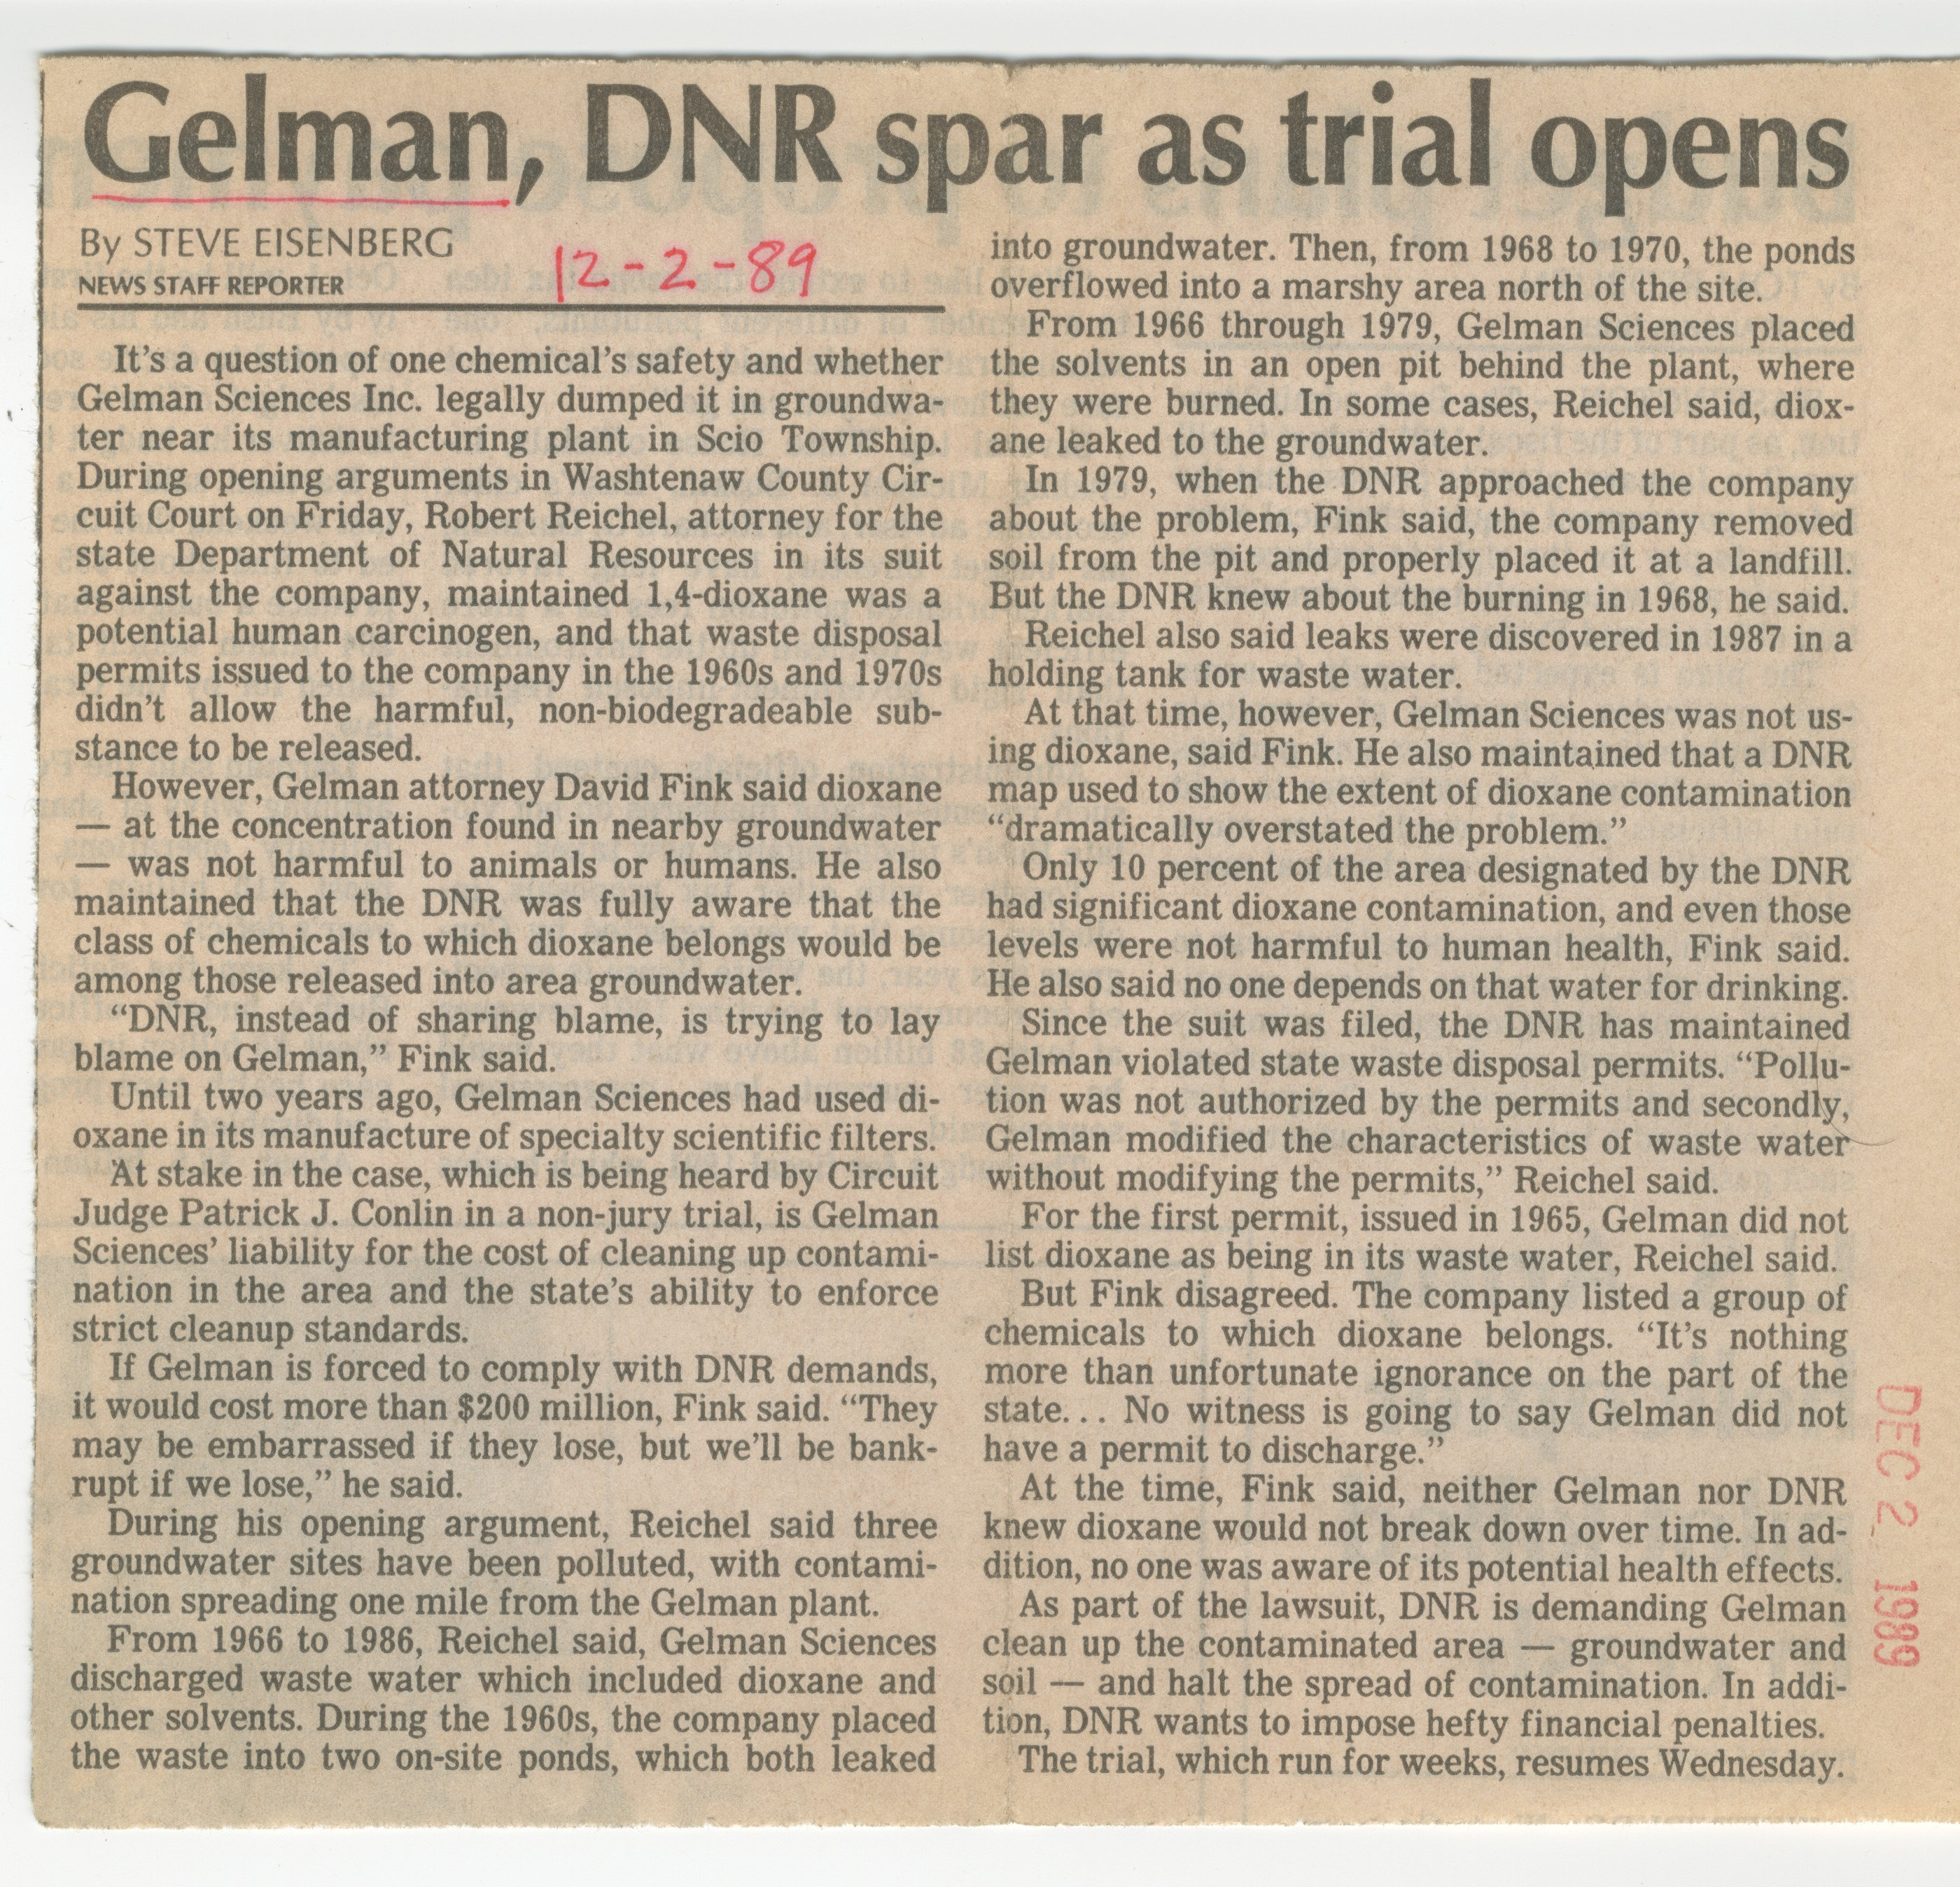 Gelman, DNR Spar As Trial Opens image